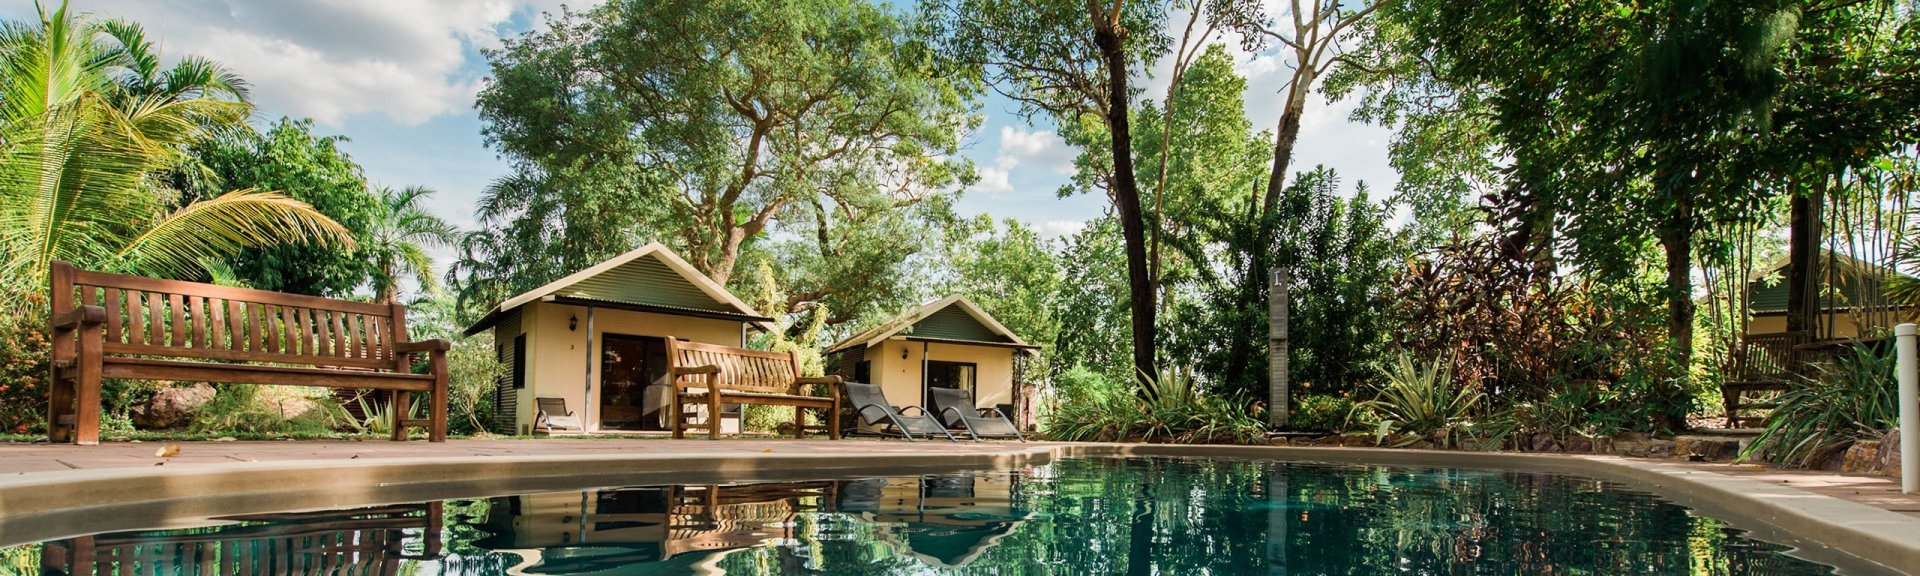 Pool bungalows at Mary River Retreat. Photo: Mary River Retreat